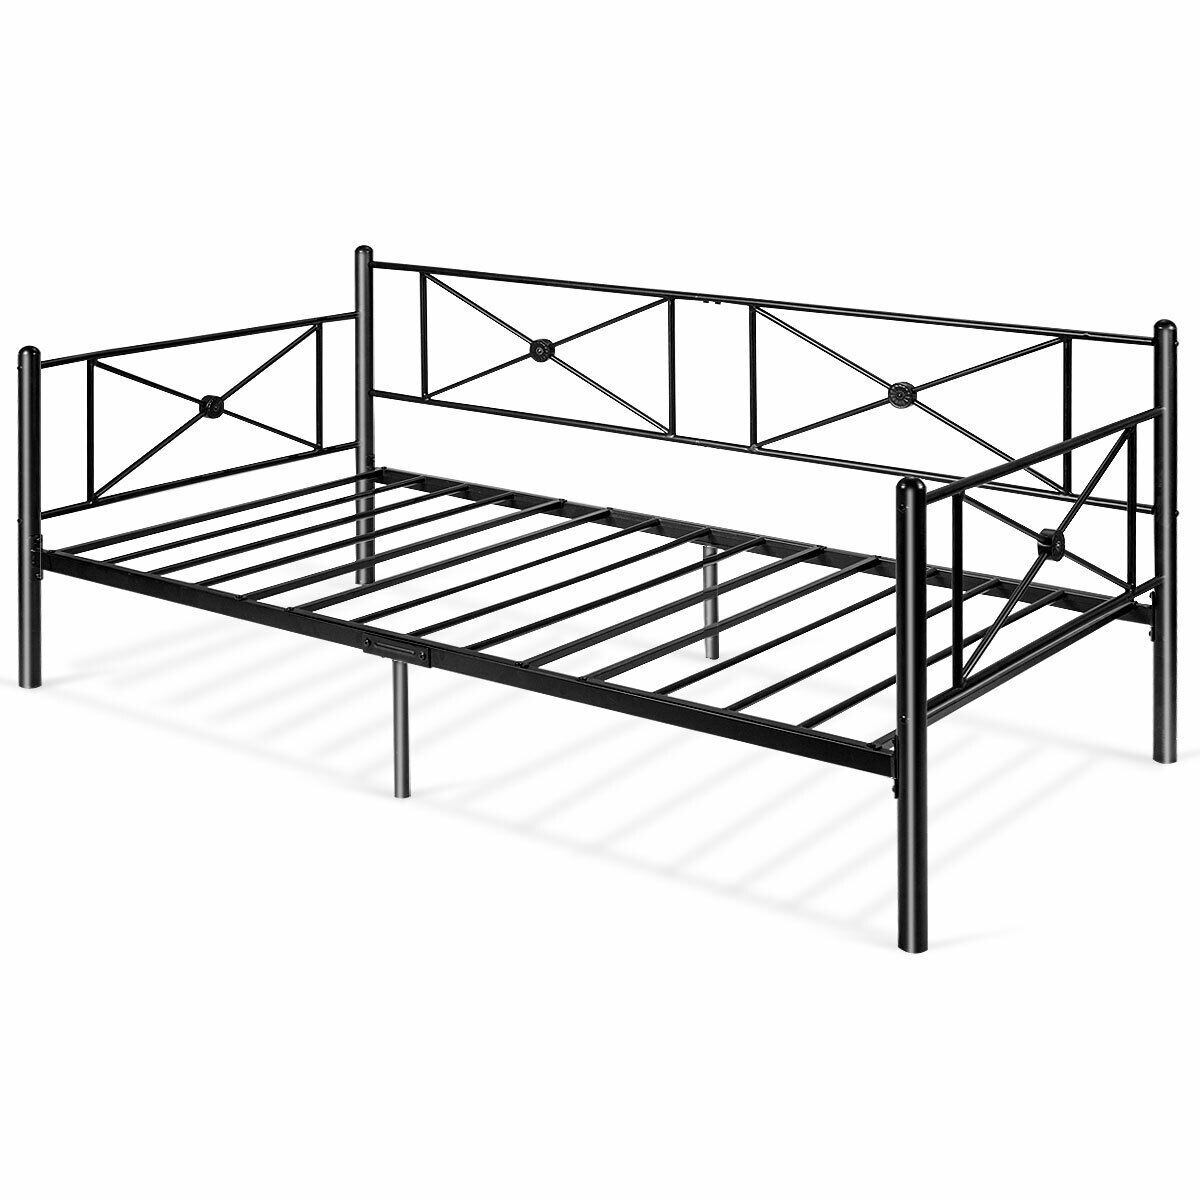 Dhp Rebecca Contemporary Metal Daybed Frame Multiple Colors Walmart Com Metal Daybed Day Bed Frame Traditional Bedroom Decor